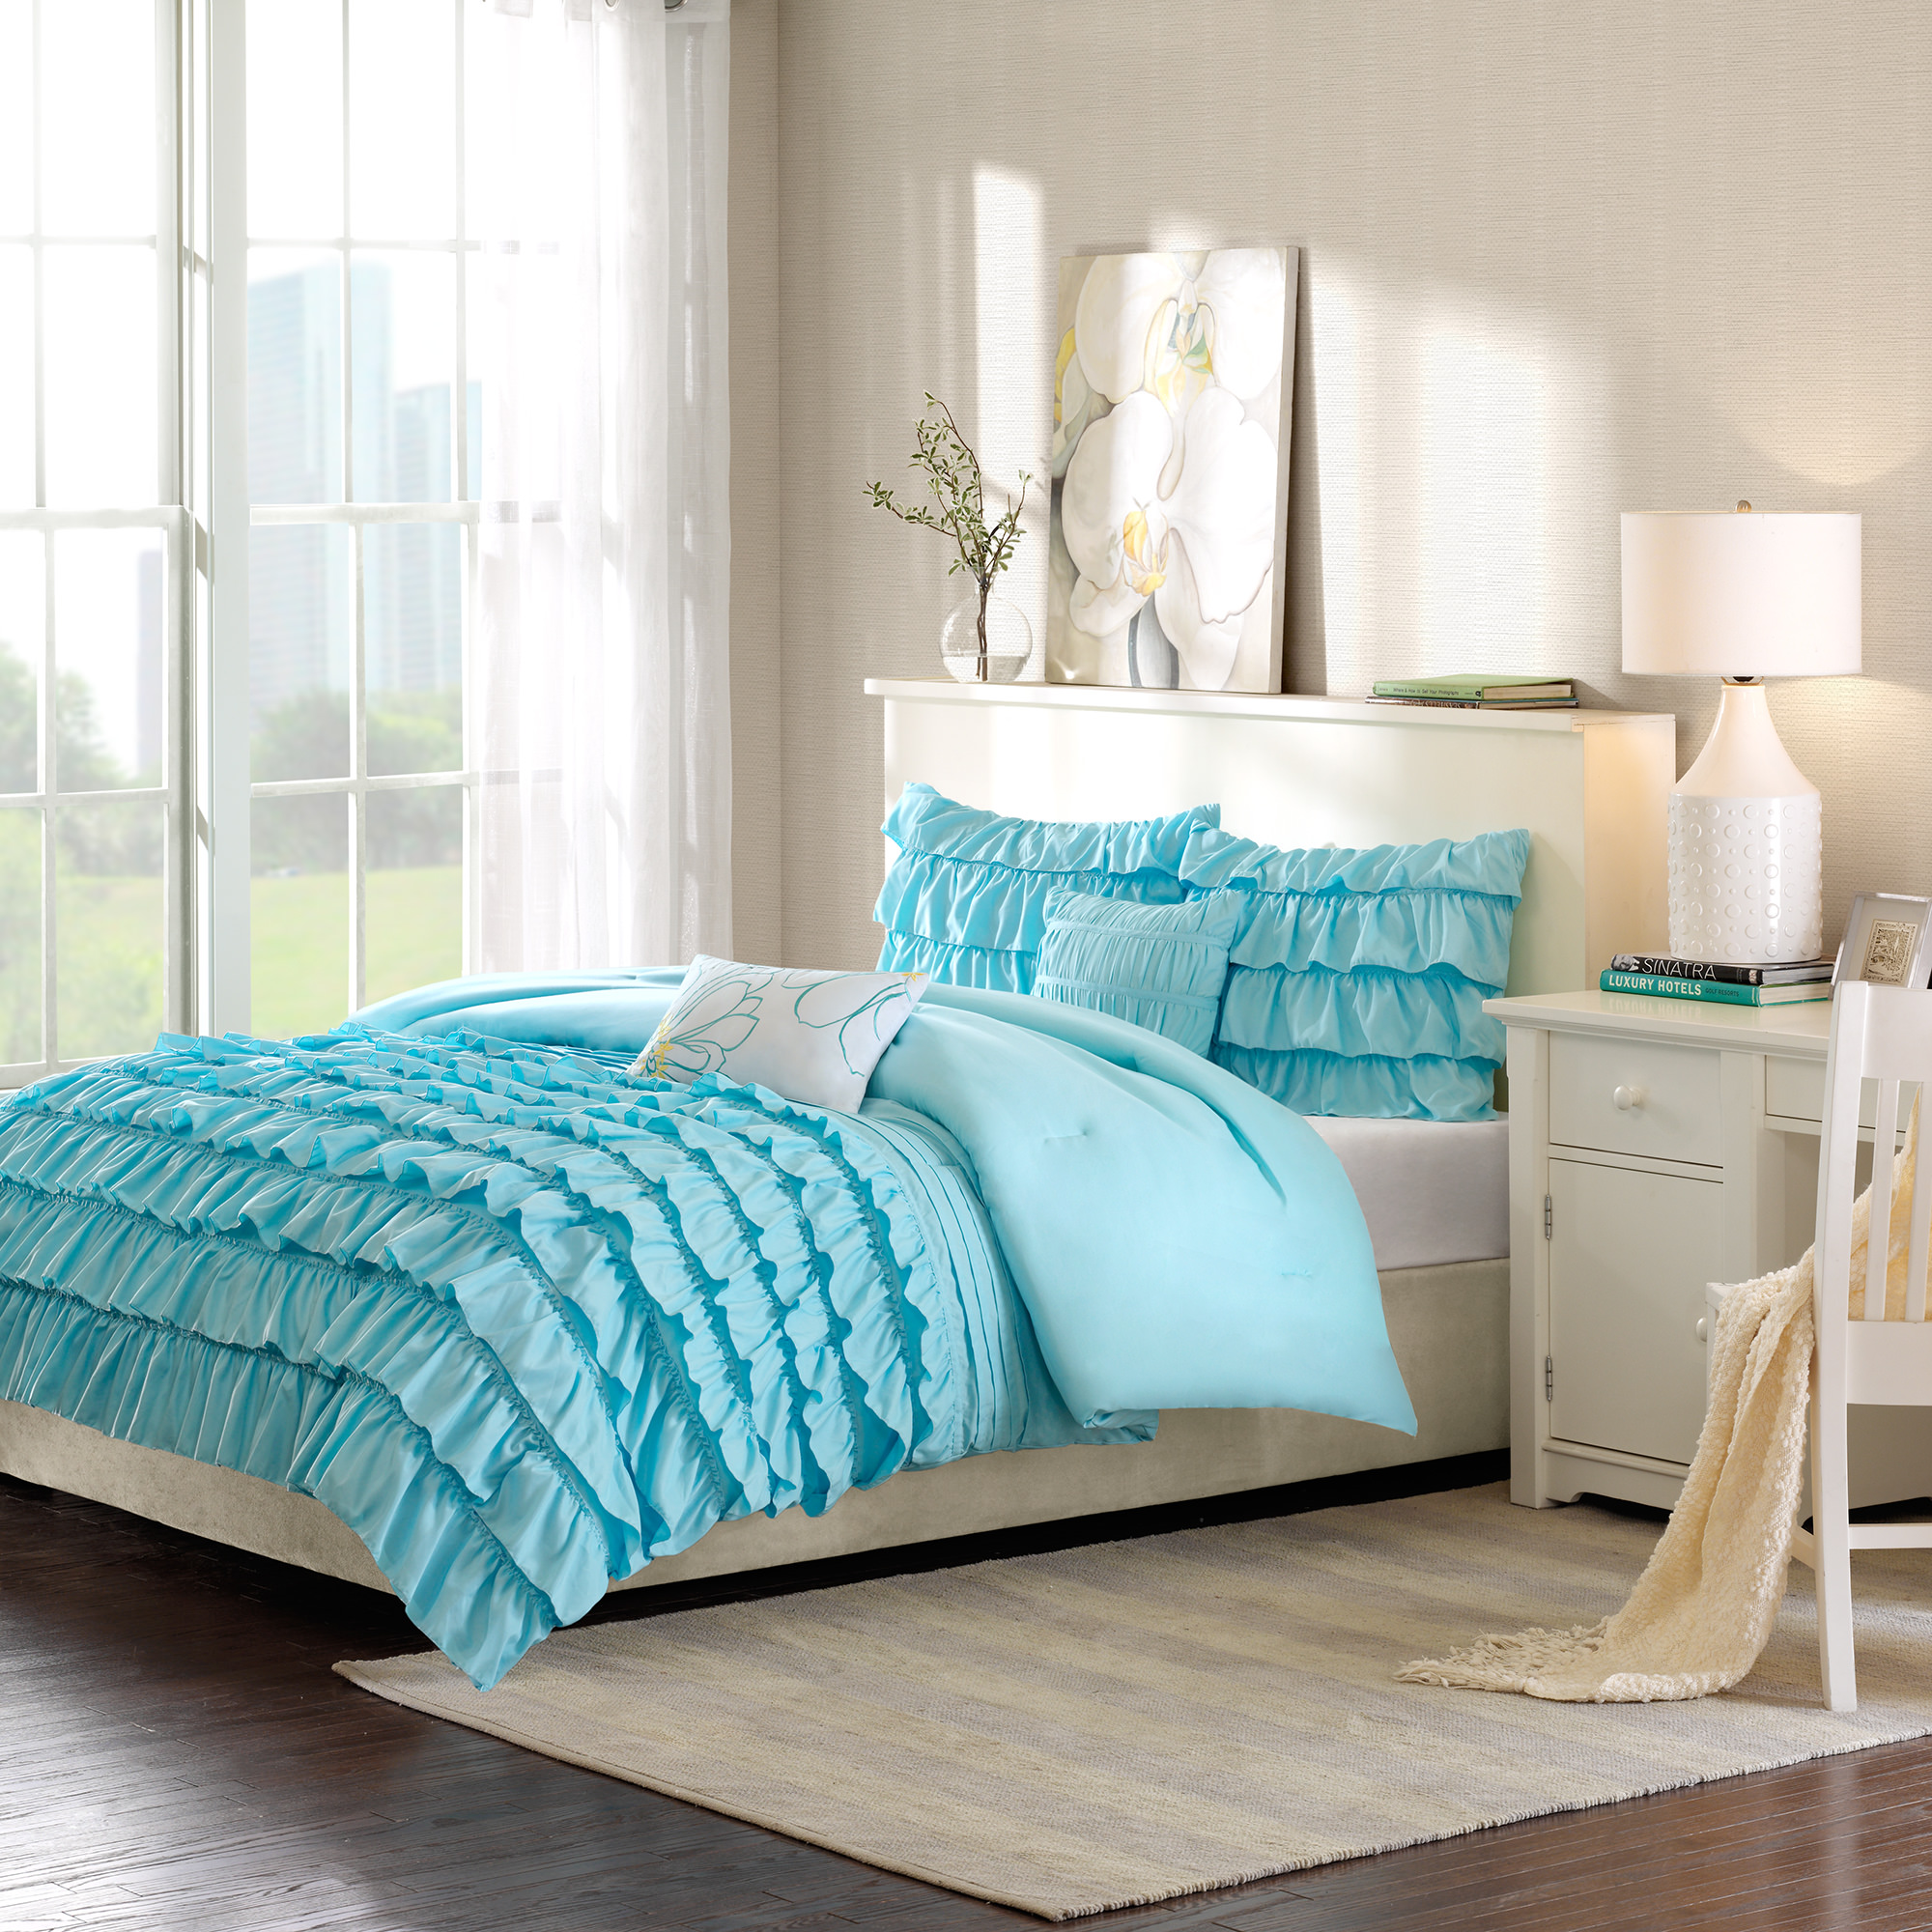 Home Essence Apartment Marley Super Soft Comforter Set